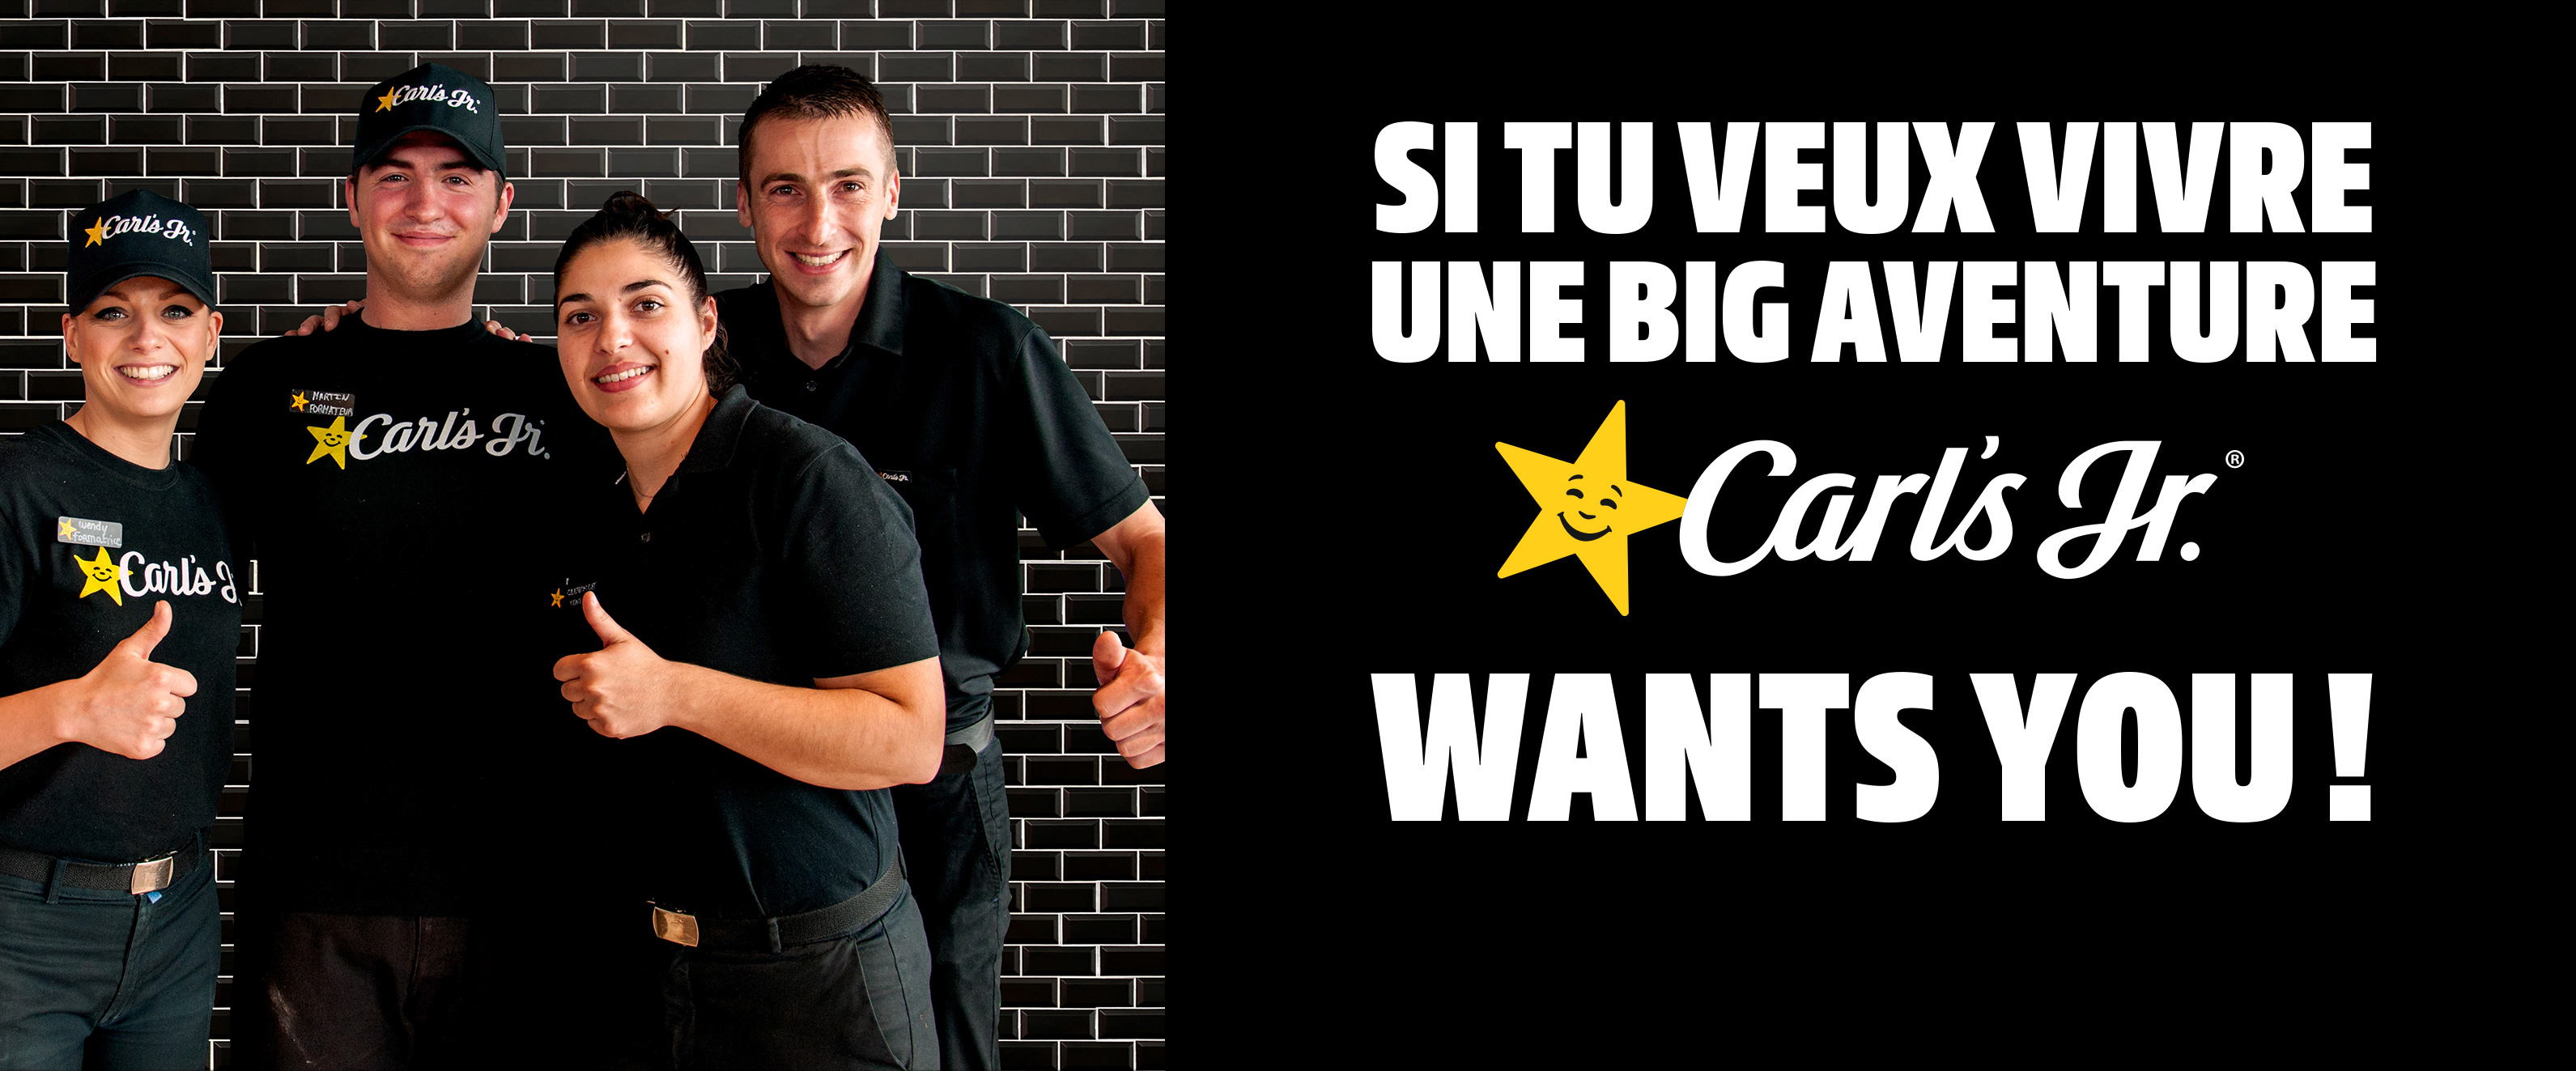 Si tu veux vivre une big aventure carlsjr wants you!